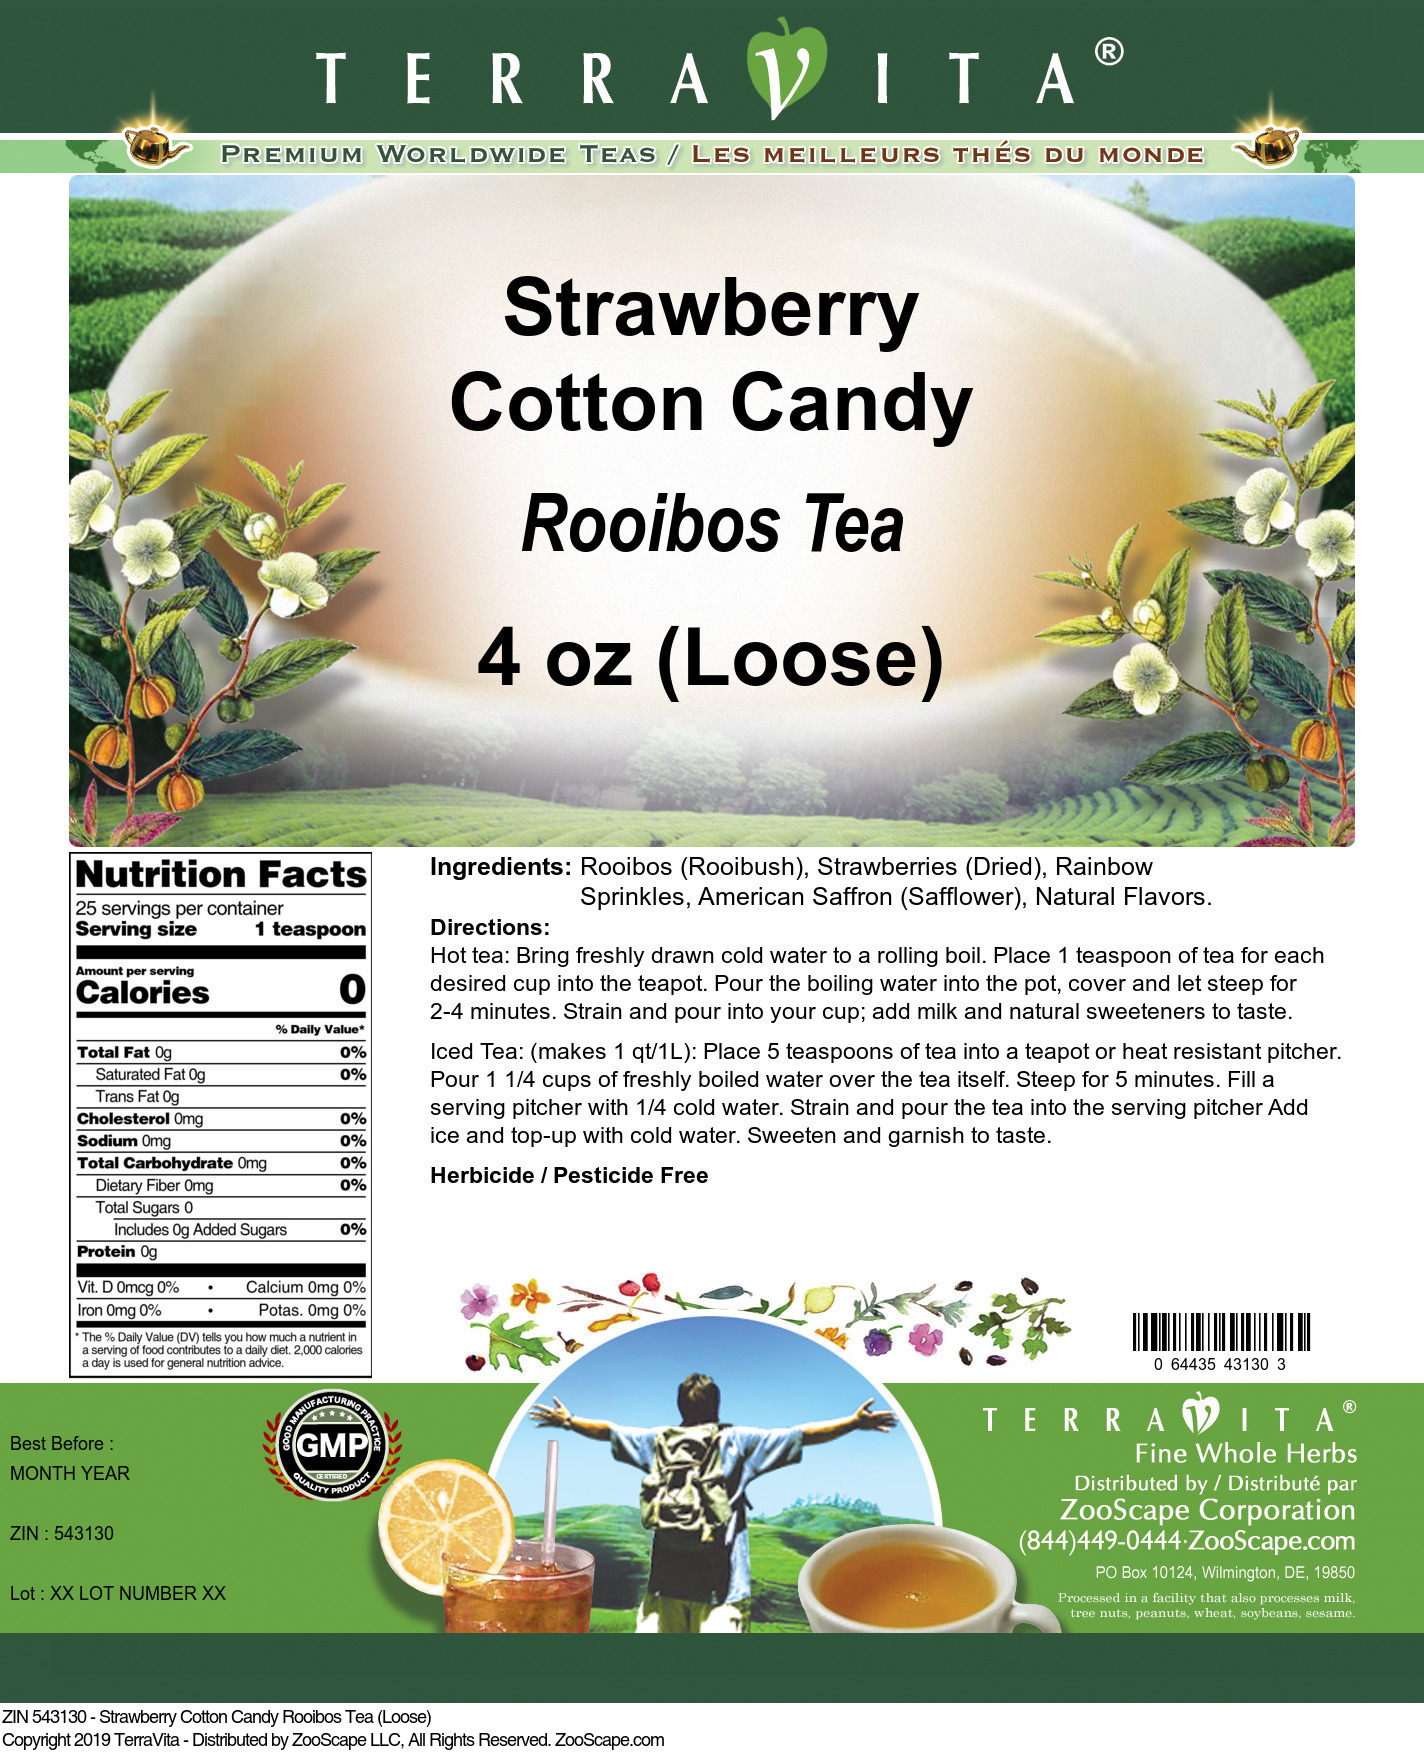 Strawberry Cotton Candy Rooibos Tea (Loose)